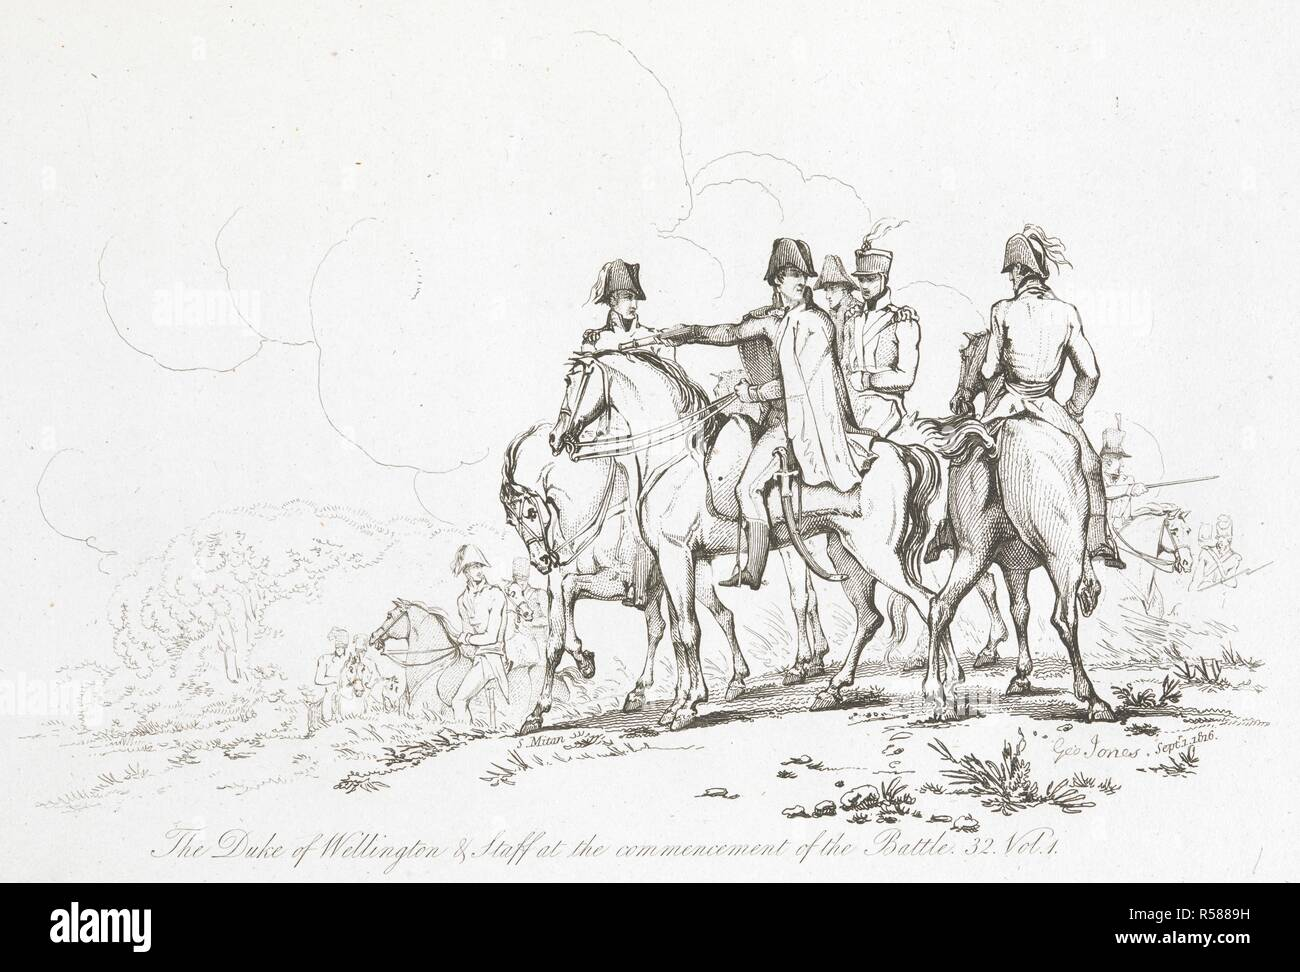 The Duke of Wellington and staff at commencement of the action on the 18th of June'. . The Battle of Waterloo, also of Ligny and Quatre-Bras described by ... a near observer ... [A narrative by C. A. Eaton, with a sketch by J. Waldie... from sketches by Captain G. Jones. 2 vol. John Booth; T. Egerton: London, 1817. Source: G.5651 volume 1, plate 11, opposite page 32. Author: Eaton, Charlotte Anne. Jones, Captain George. - Stock Image